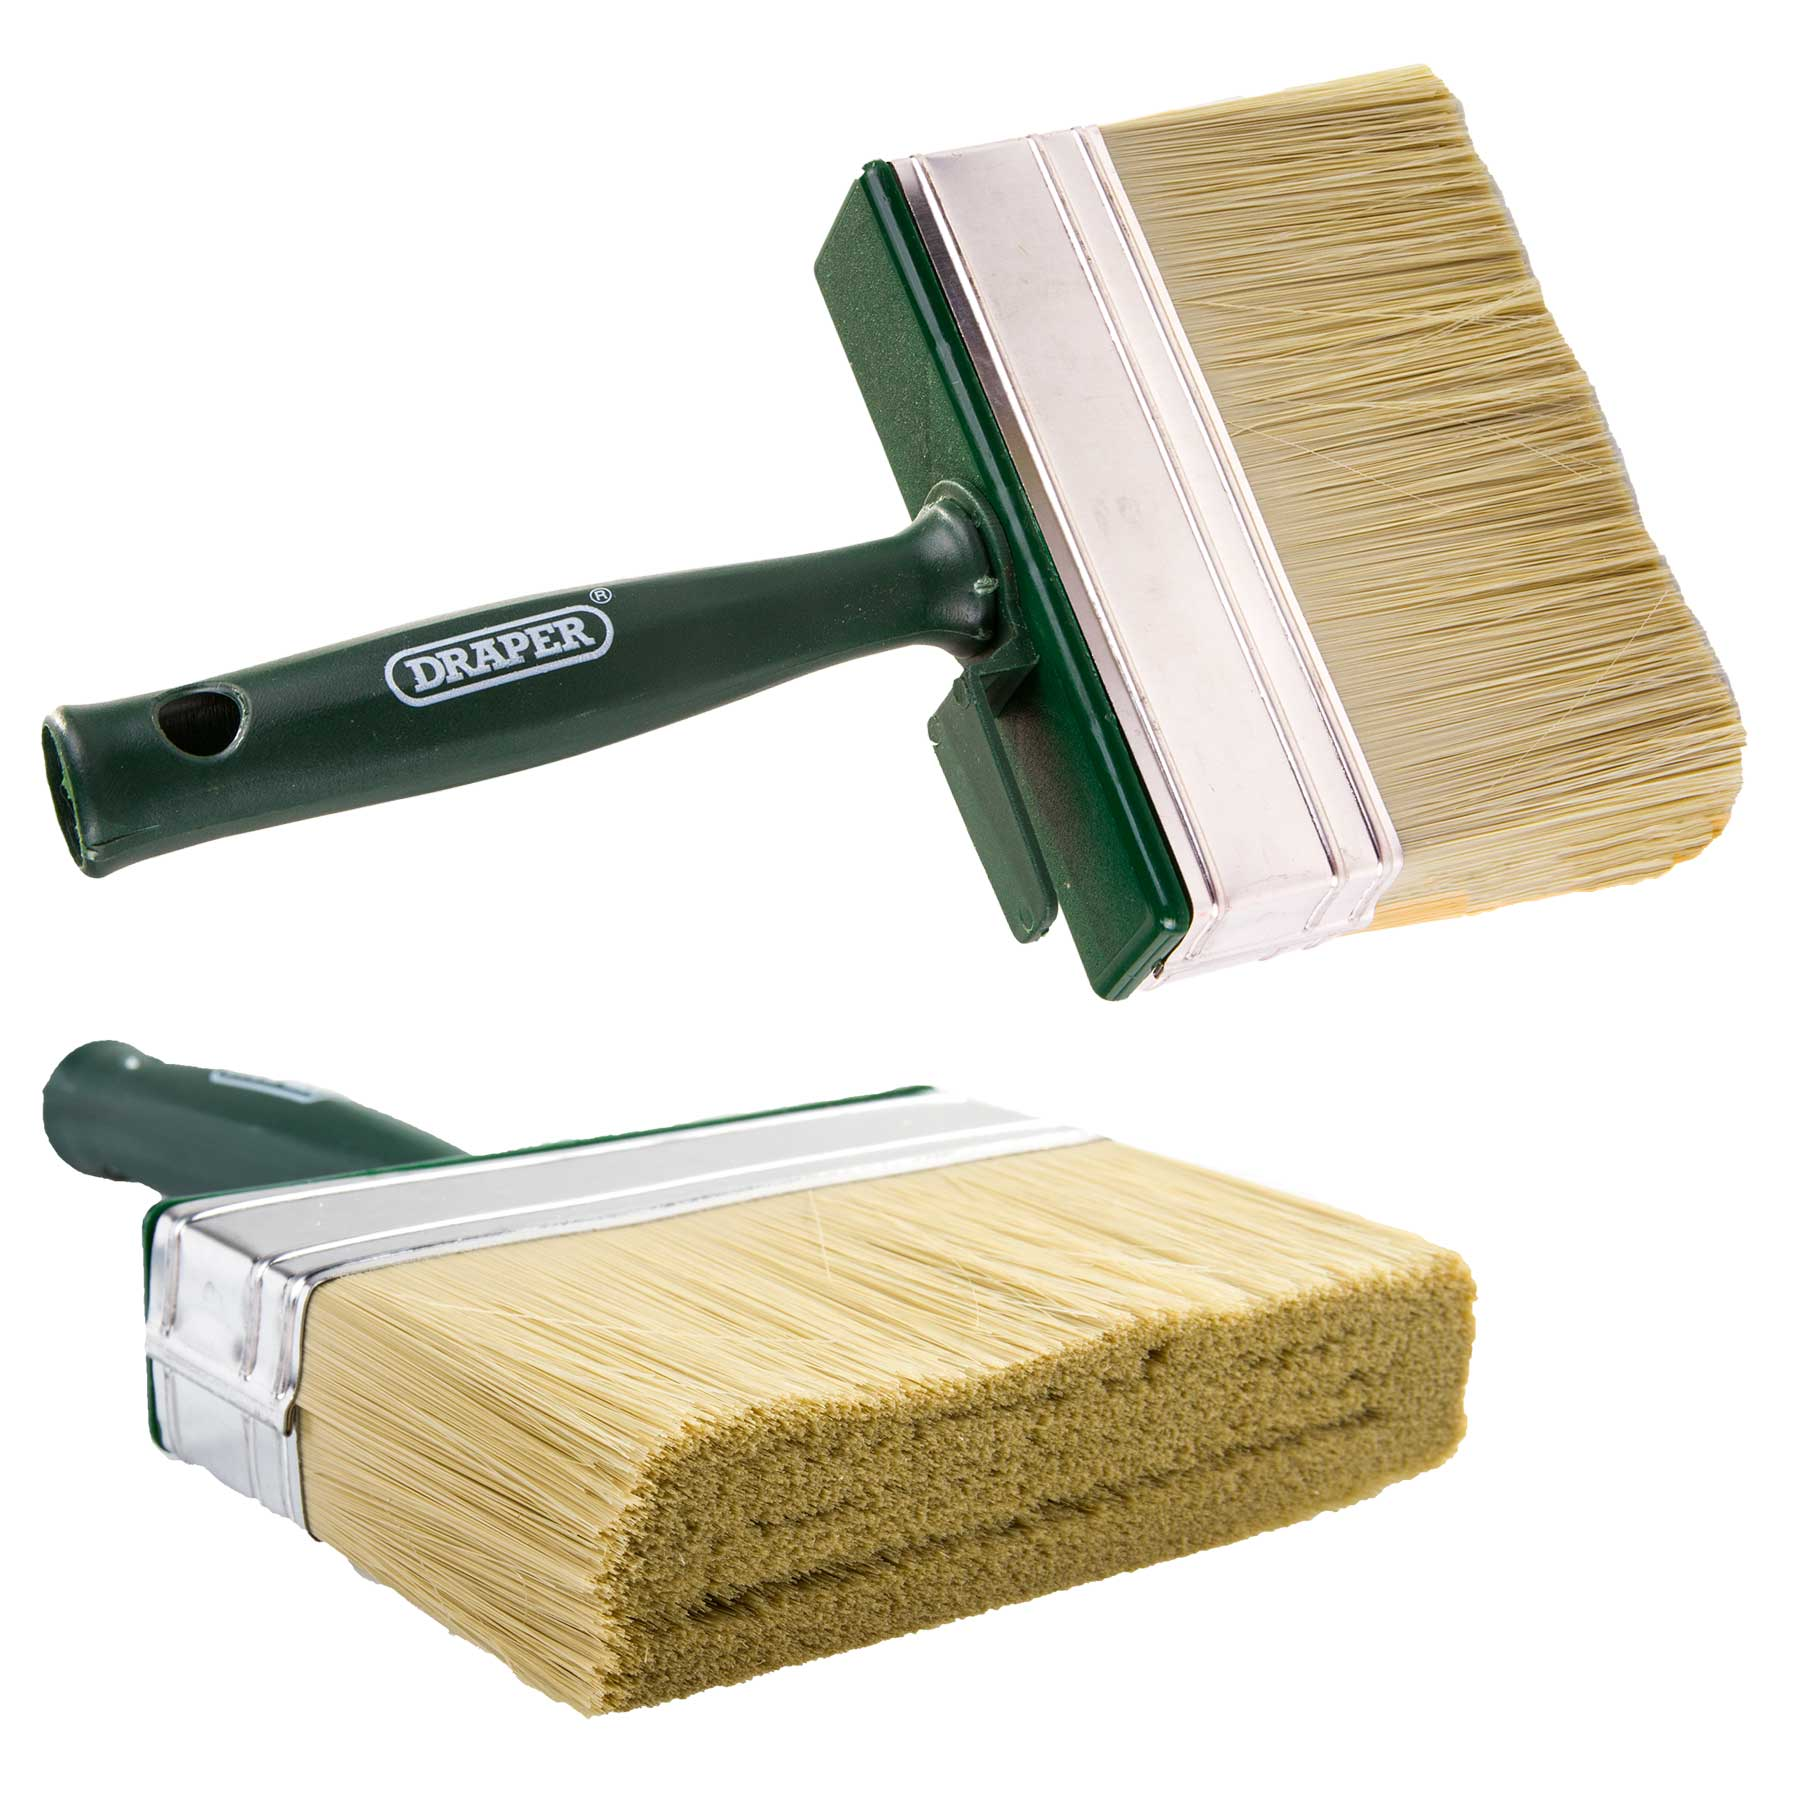 Draper mm wide shed and fence paint brush stain